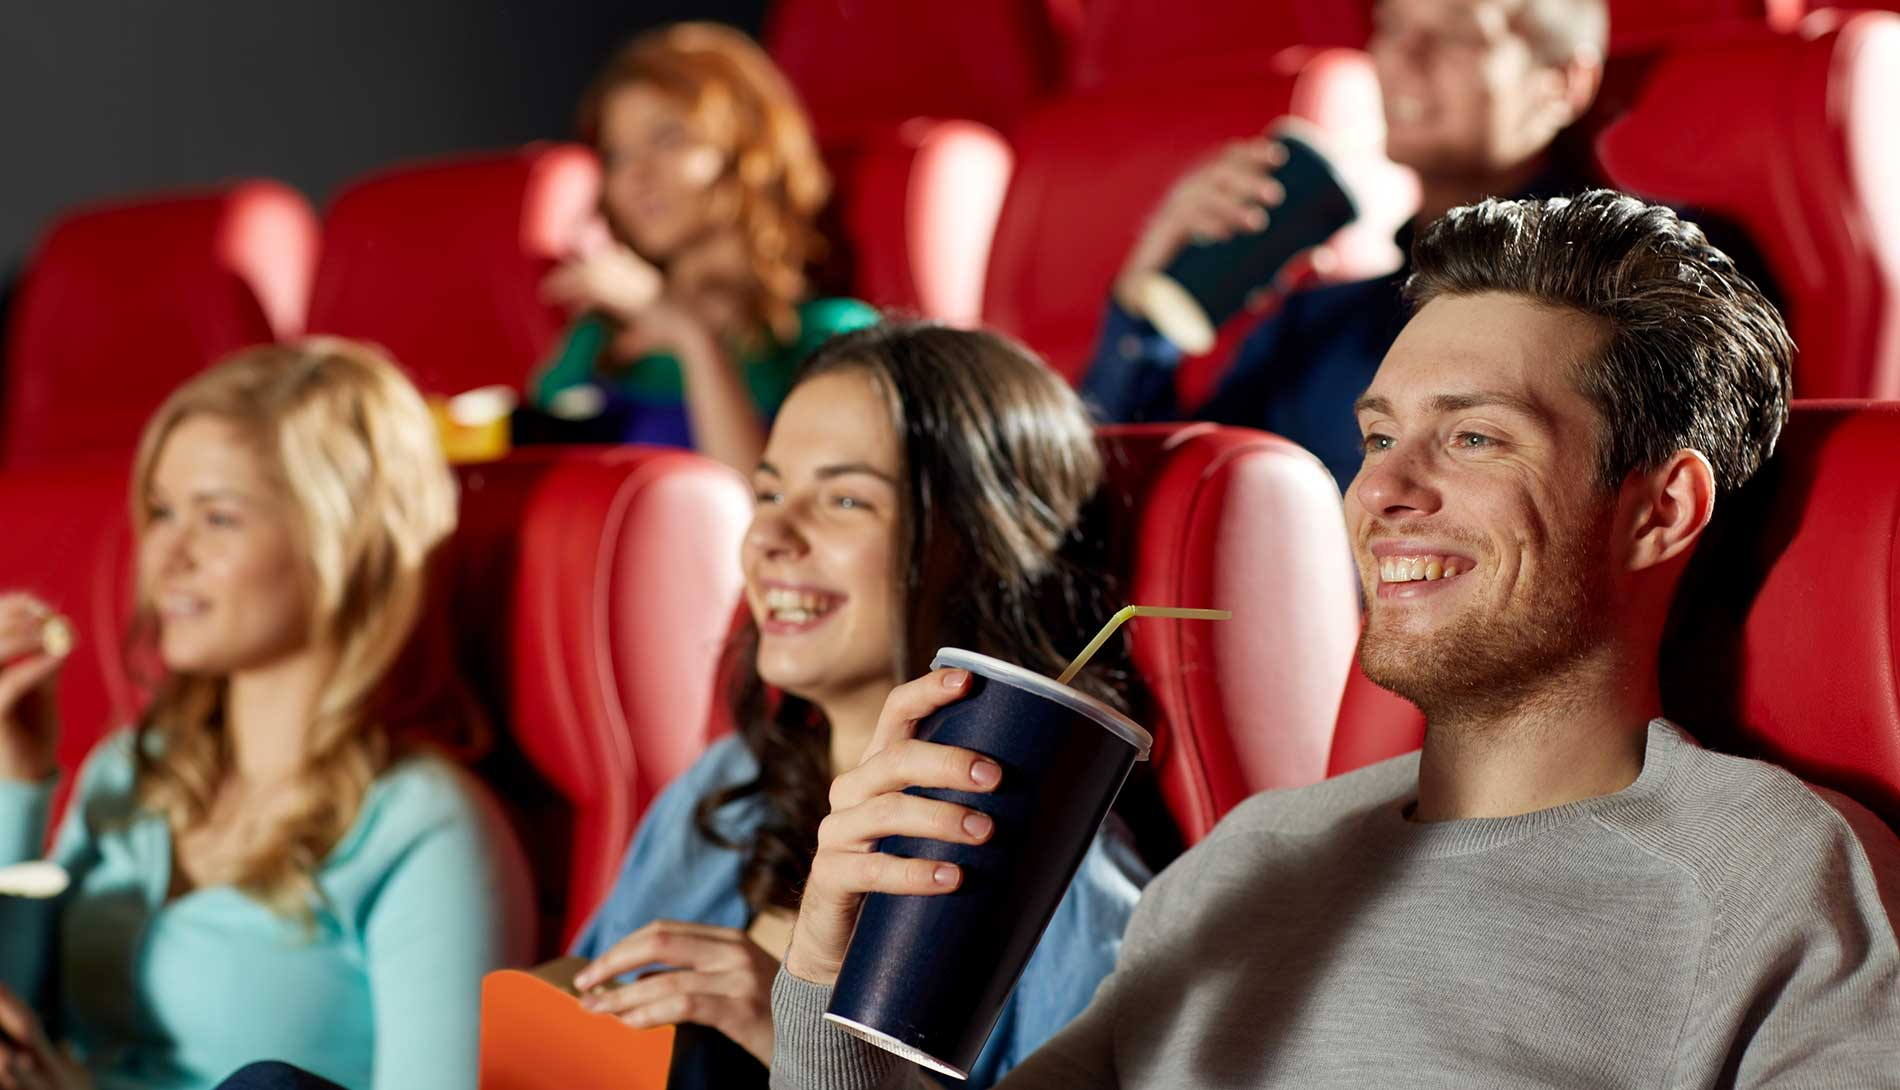 Audience in a cinema